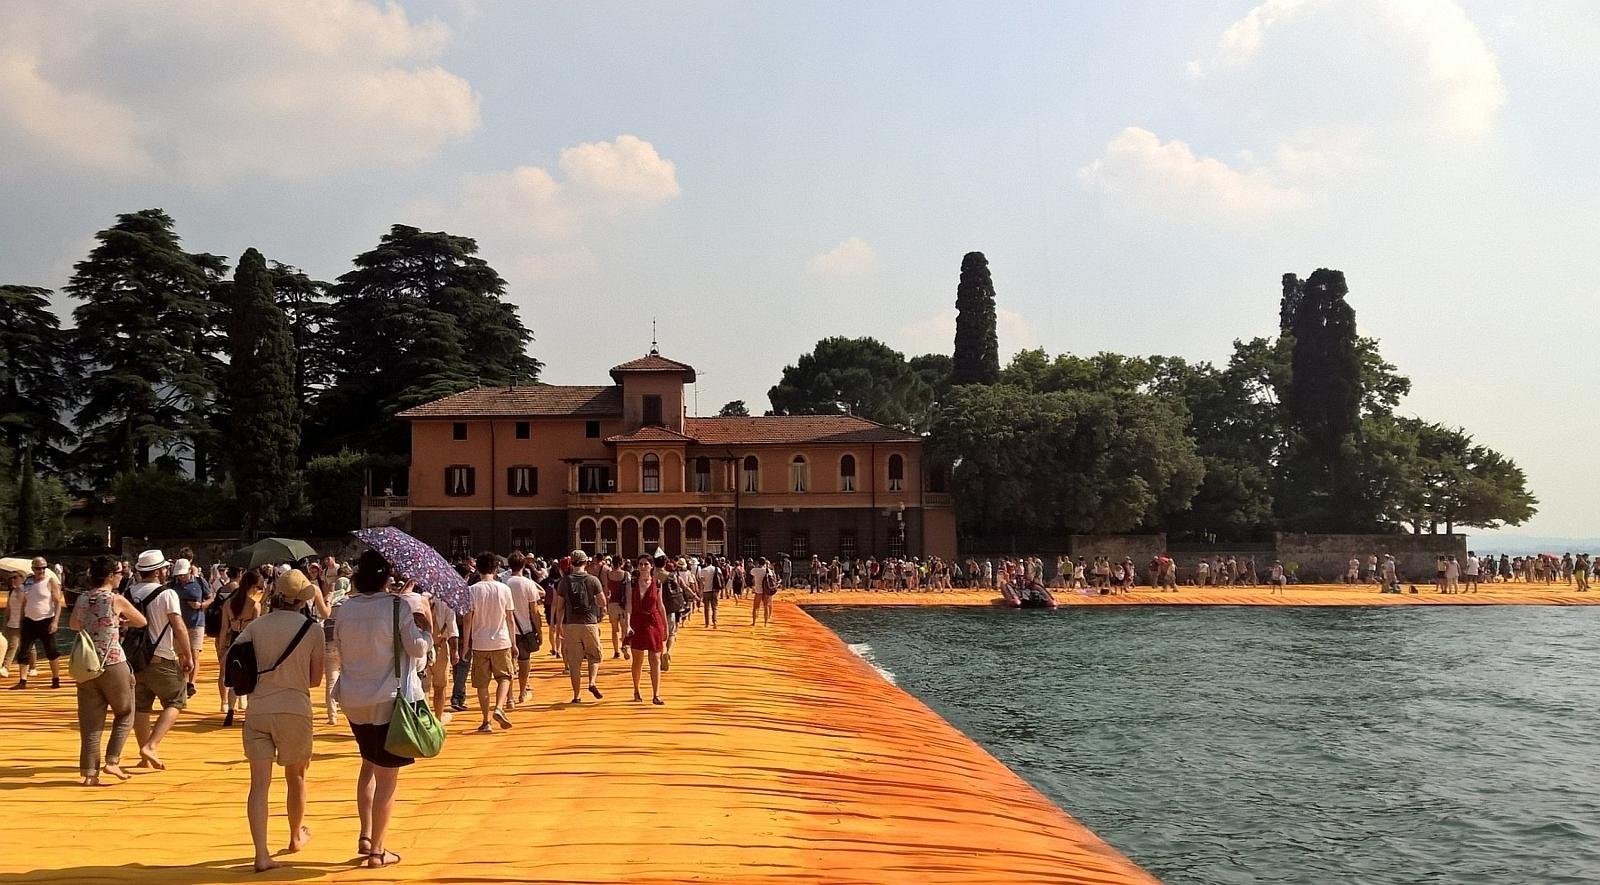 Foto di HRG - * 'The Floating Piers' Italien - Christo Projekt Iseosee Sulzano